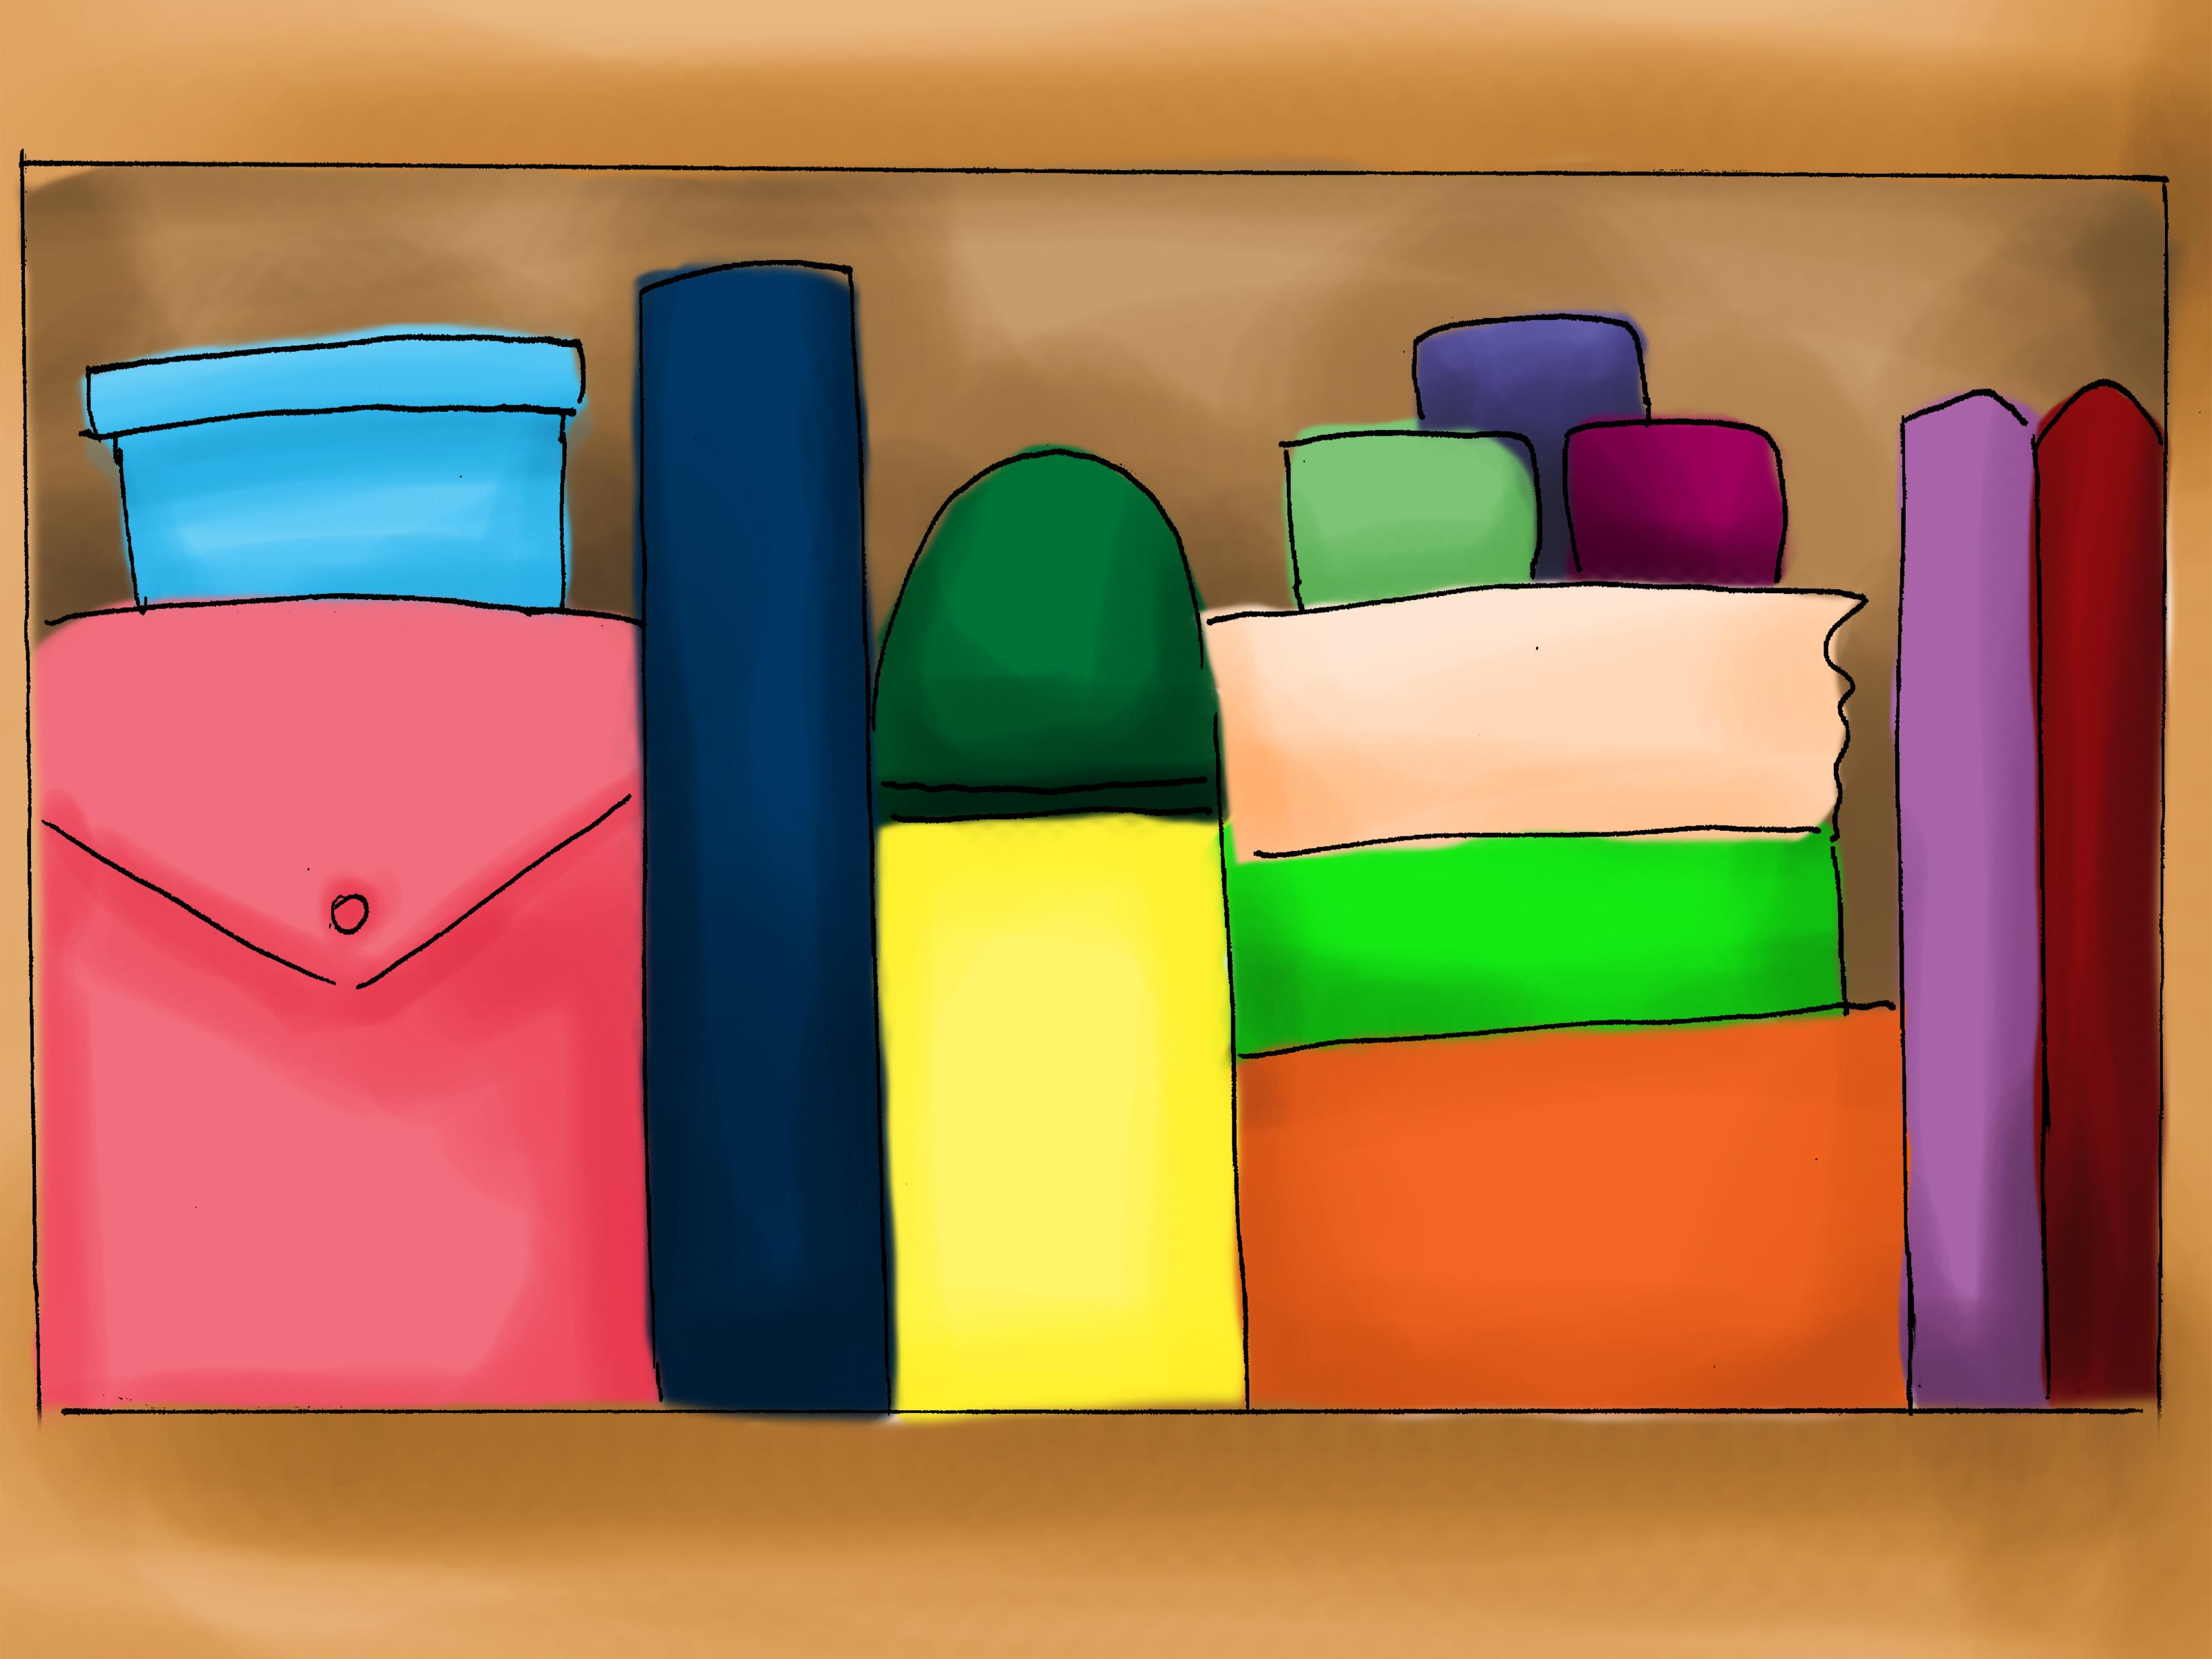 Free Organizing Home Cliparts, Download Free Clip Art, Free.